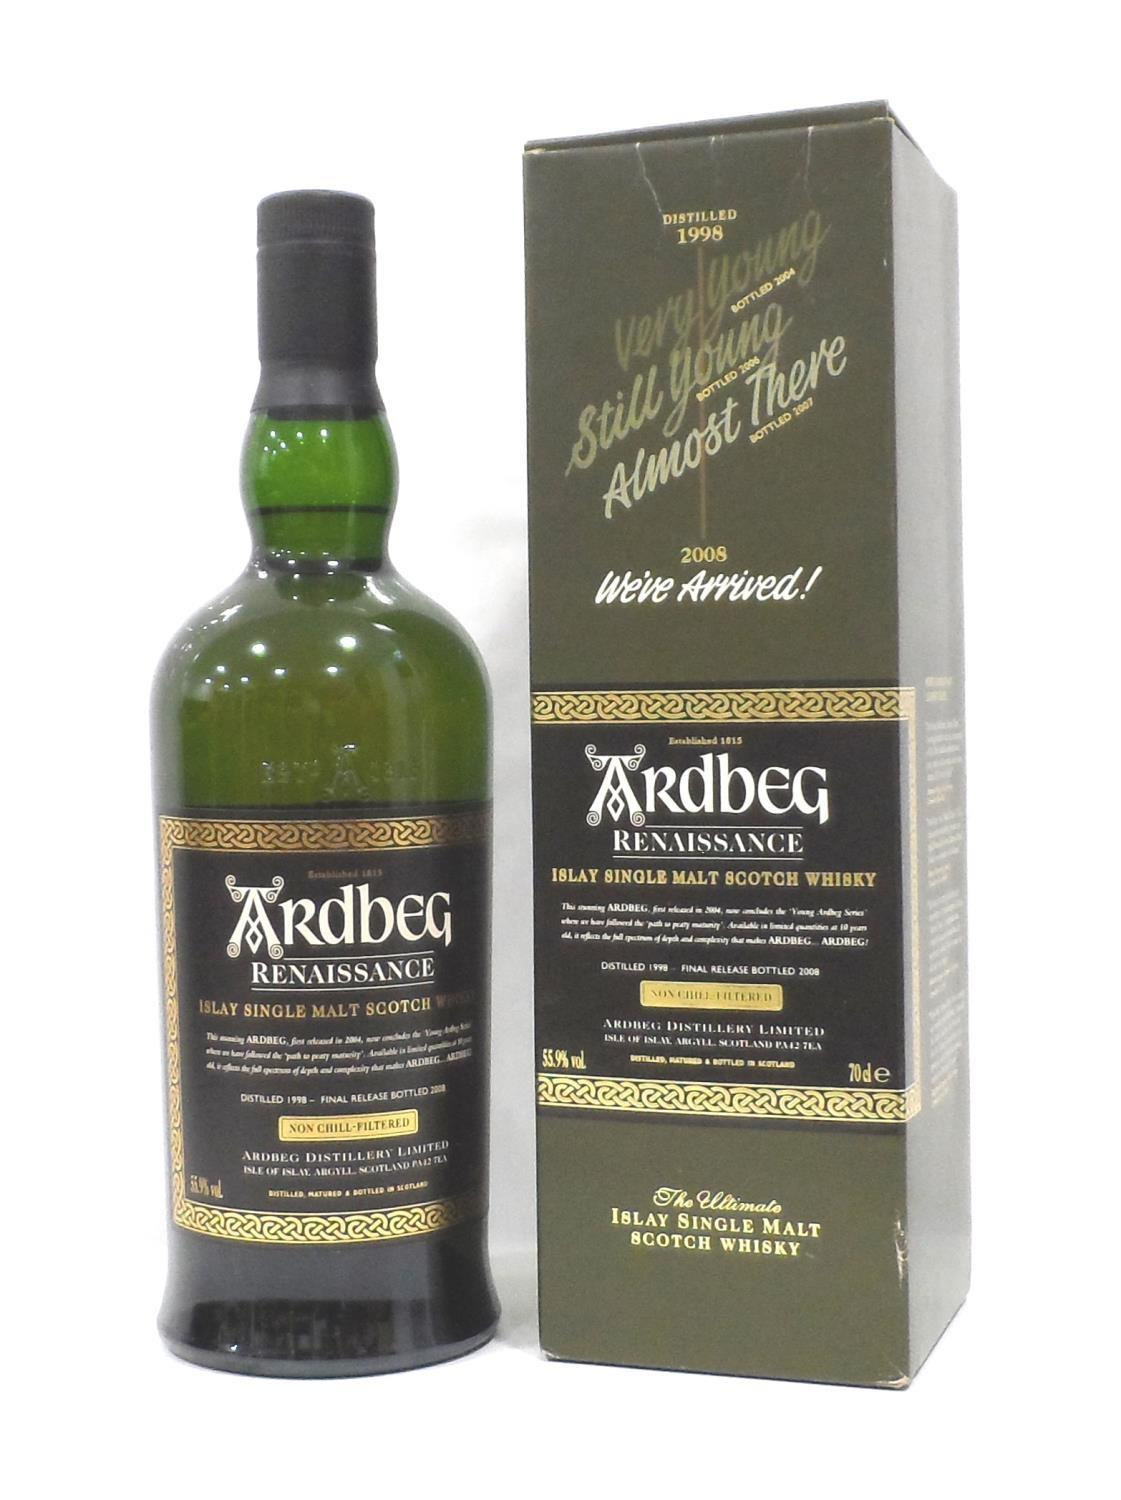 Lot 21 - ARDBEG RENAISSANCE The final instalment in the series celebrating the reappearance of the Ten Year